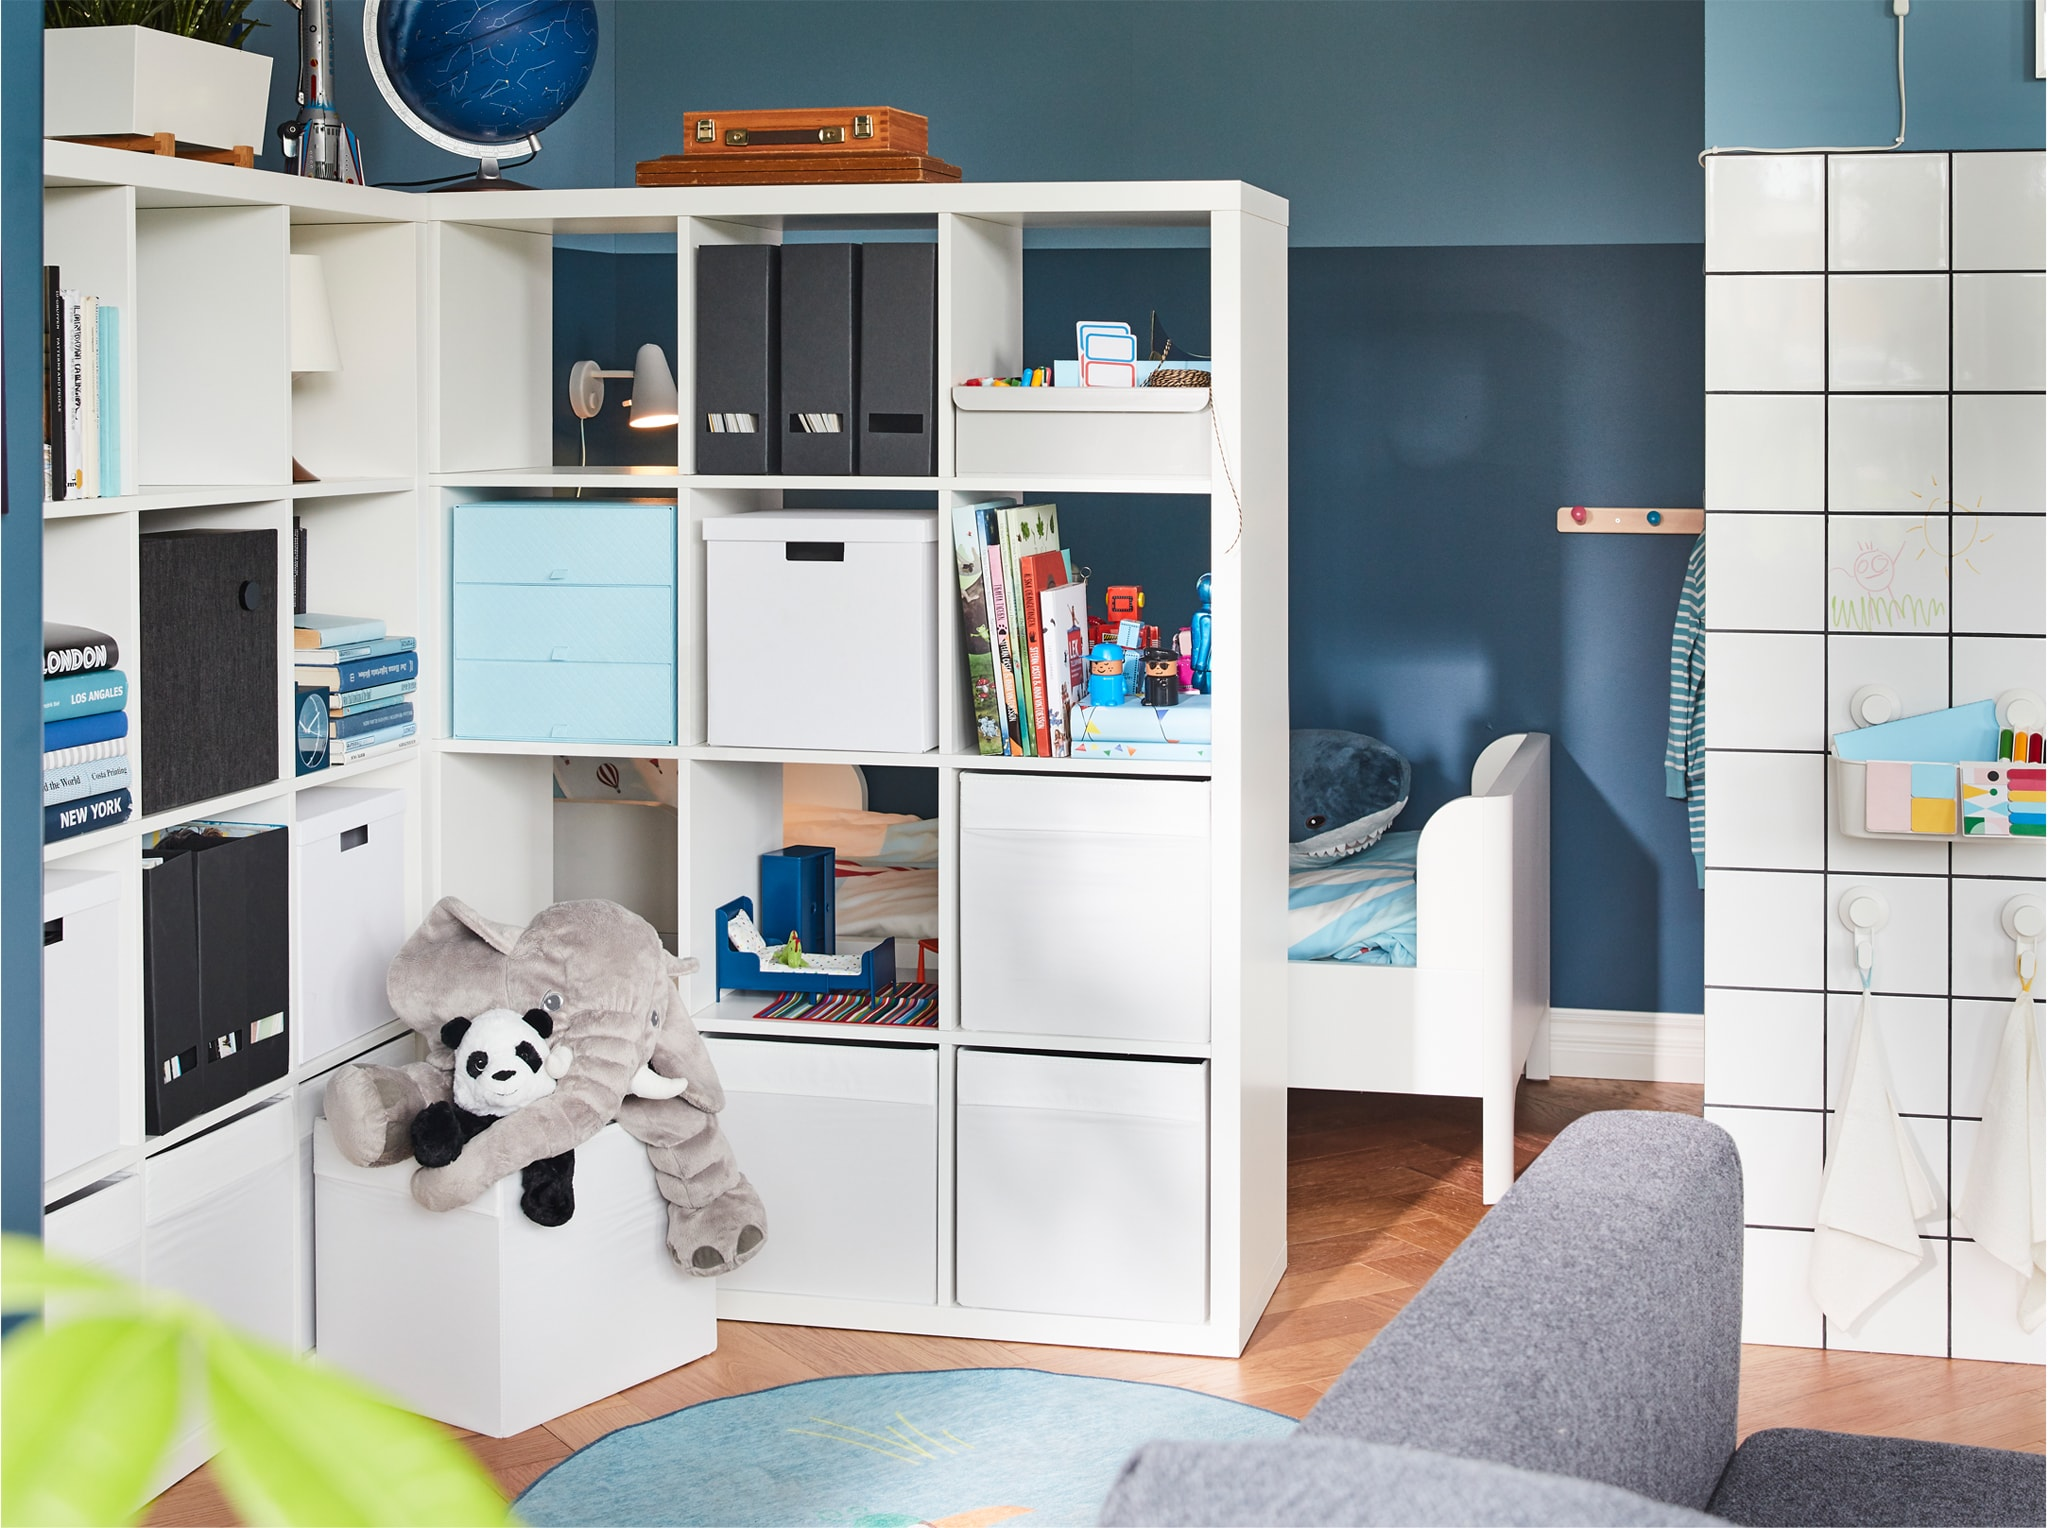 Two shelving units serve as a room divider while offering much storage space. Behind them, you can glimpse a children's bed.